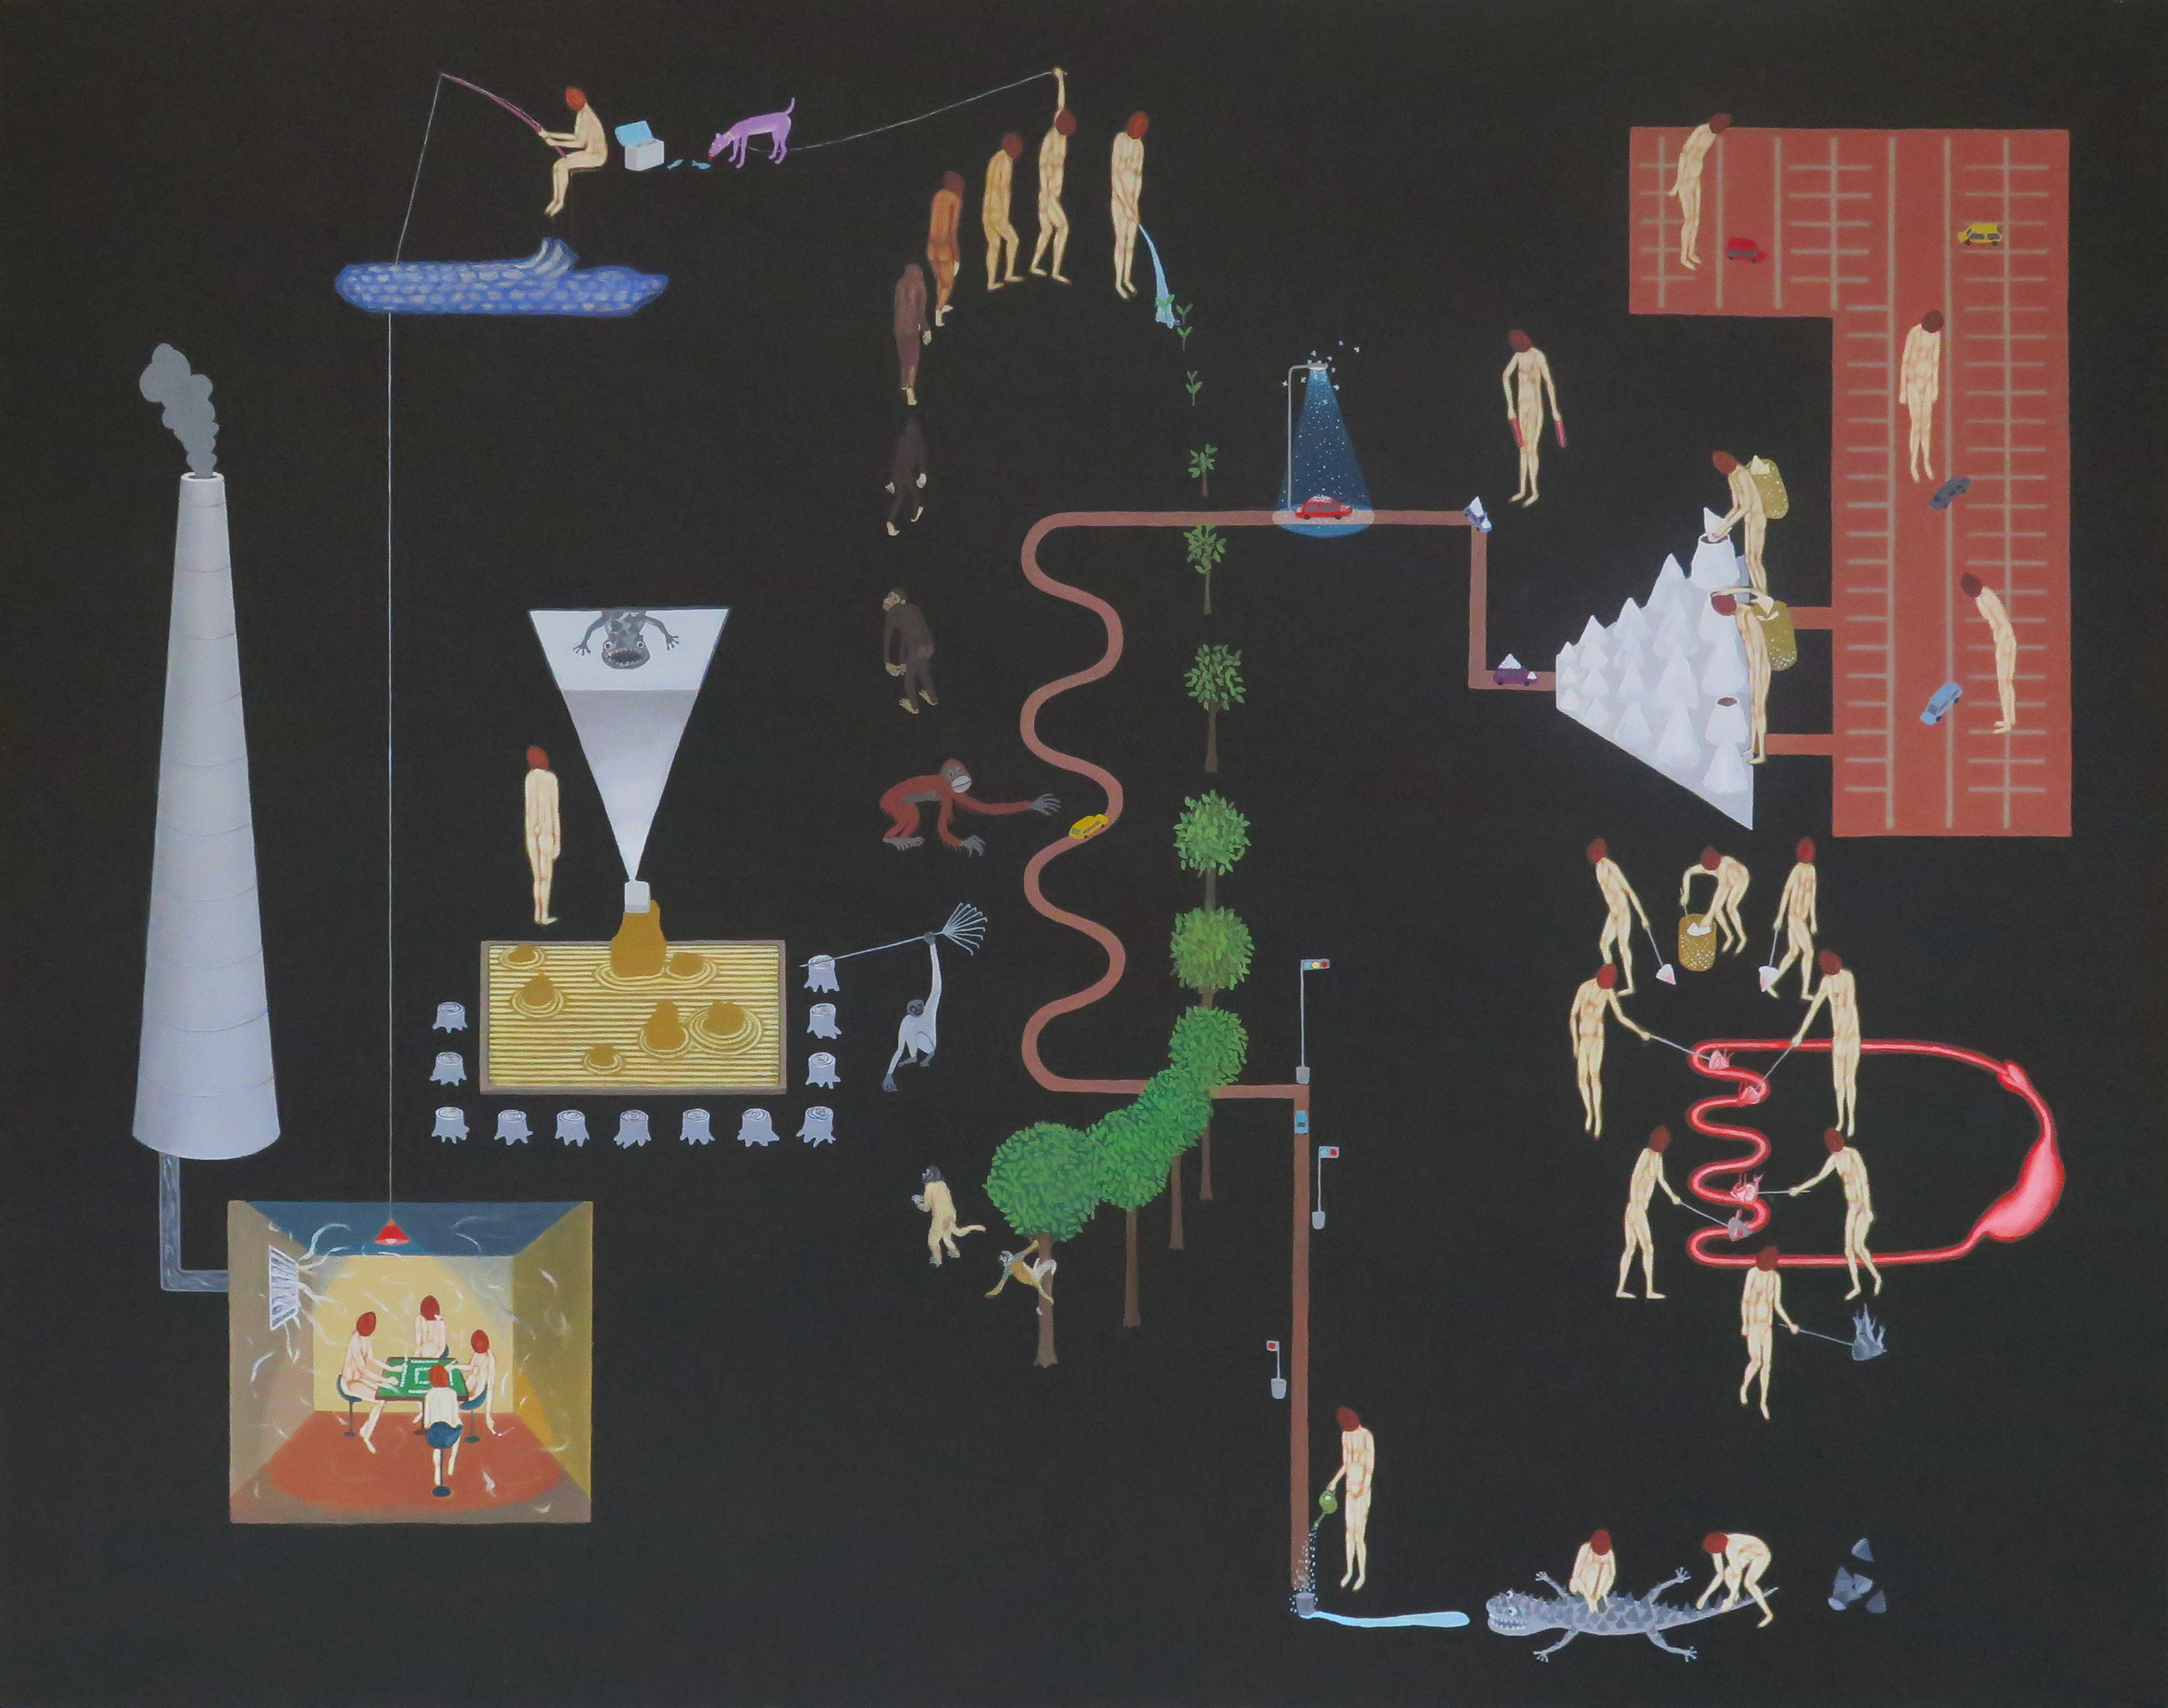 Gallery2 Diagram Of Power Plant Coconut Heads On The Coal Fired 2018 48x60 Inch